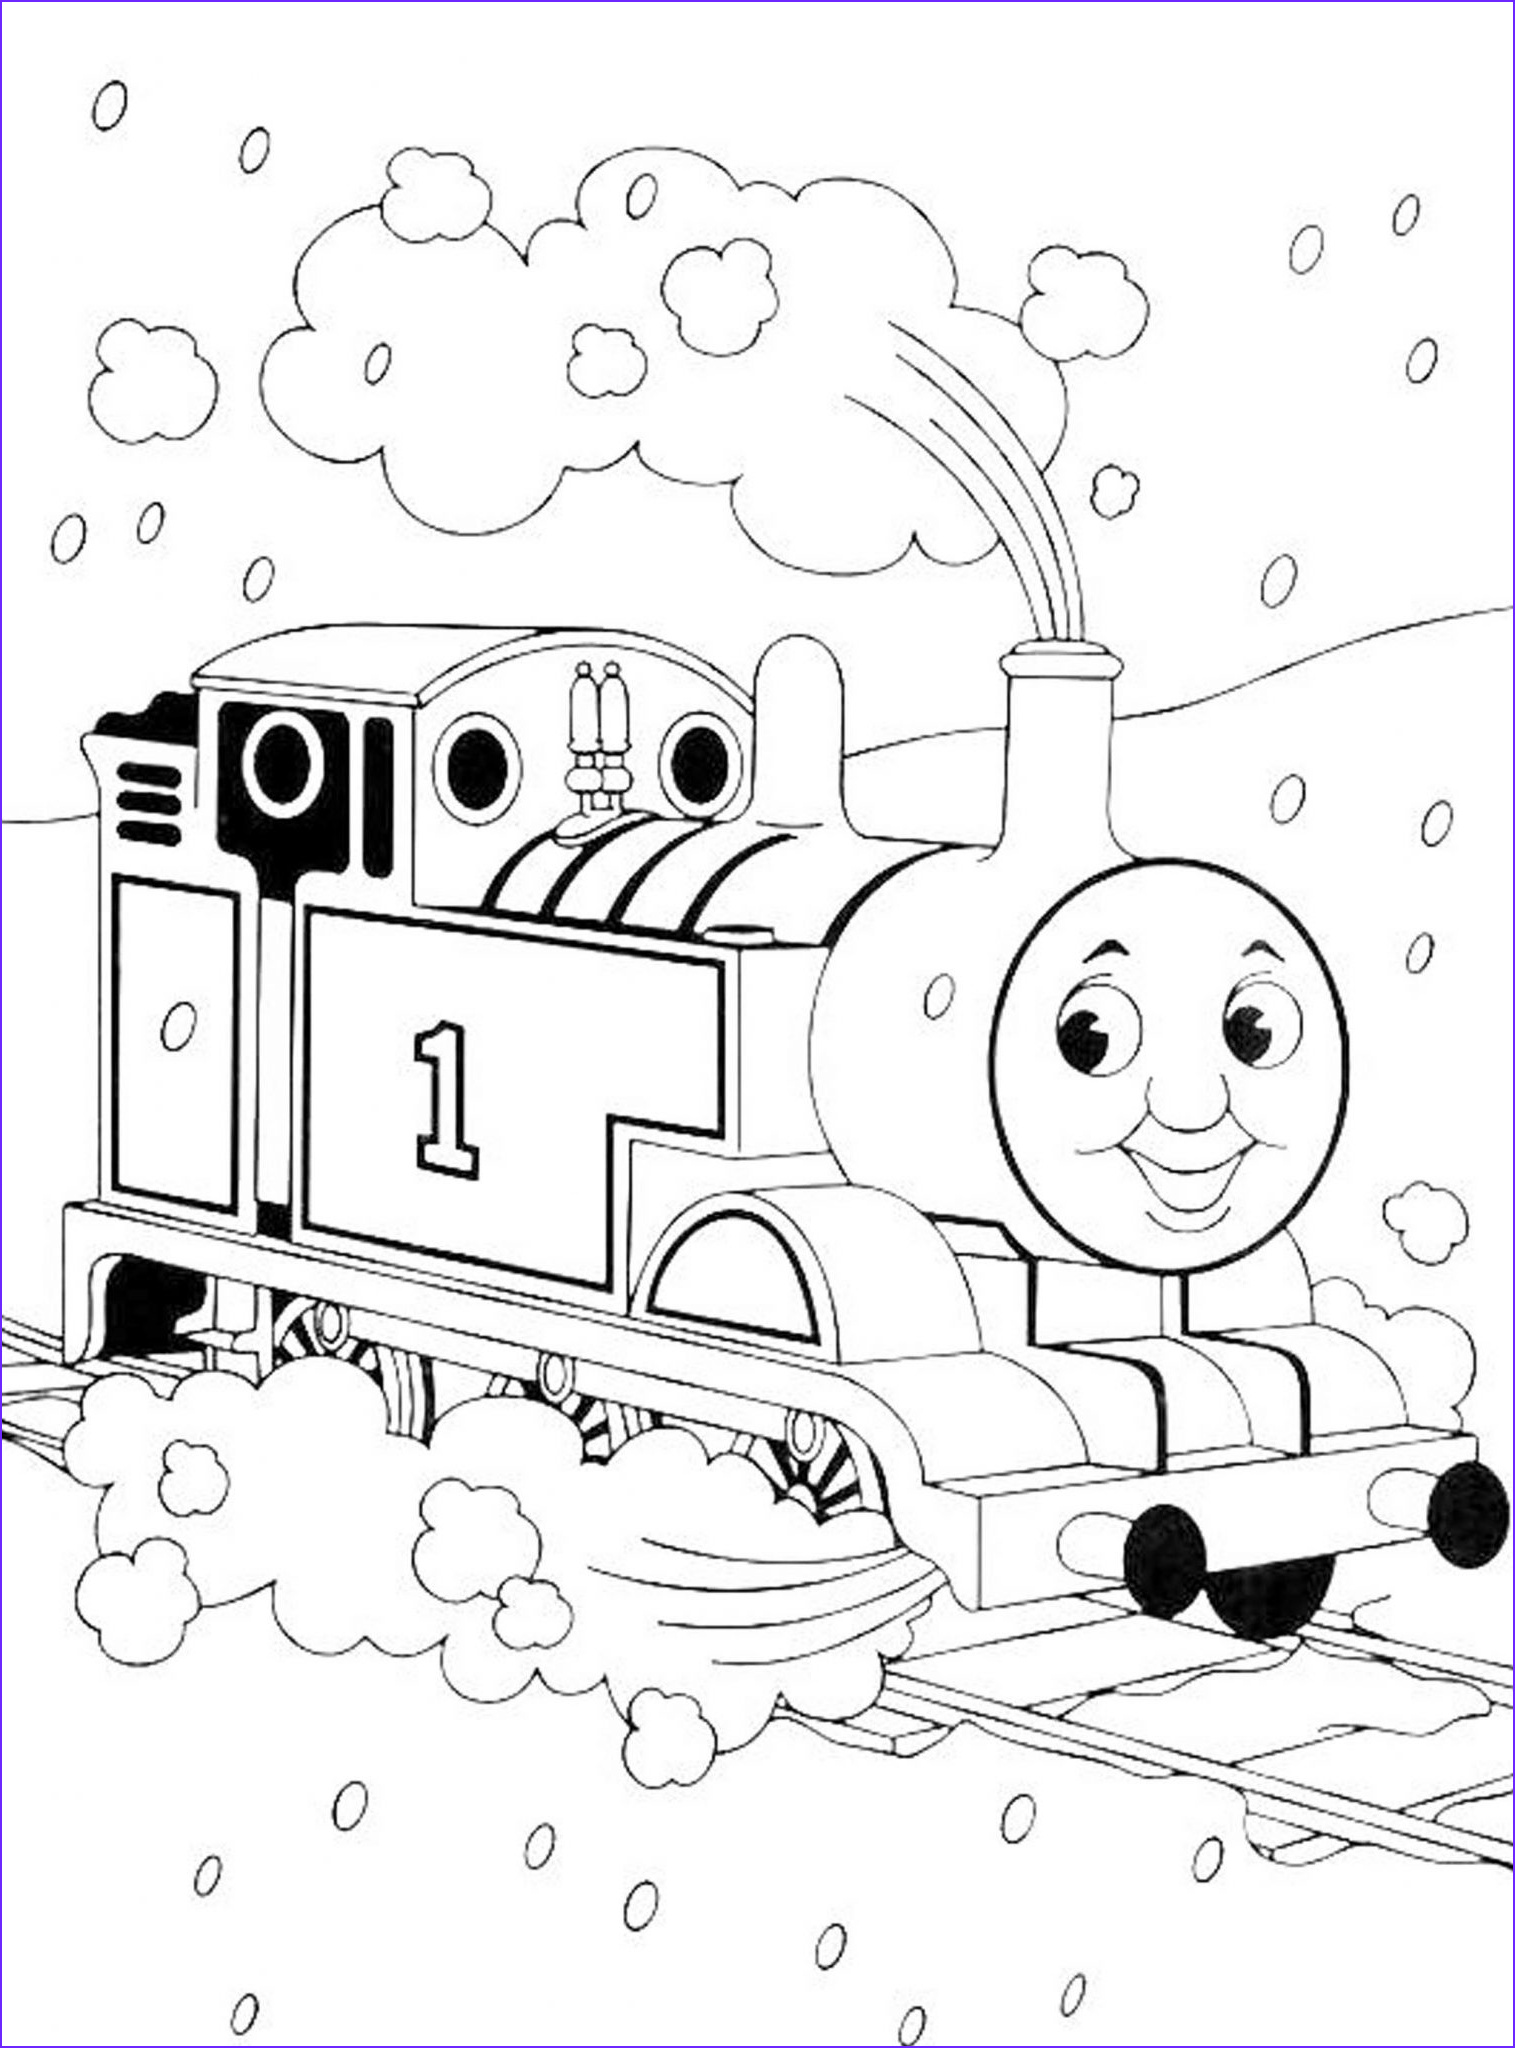 Trains Coloring Page Luxury Photos Print & Download Thomas the Train theme Coloring Pages